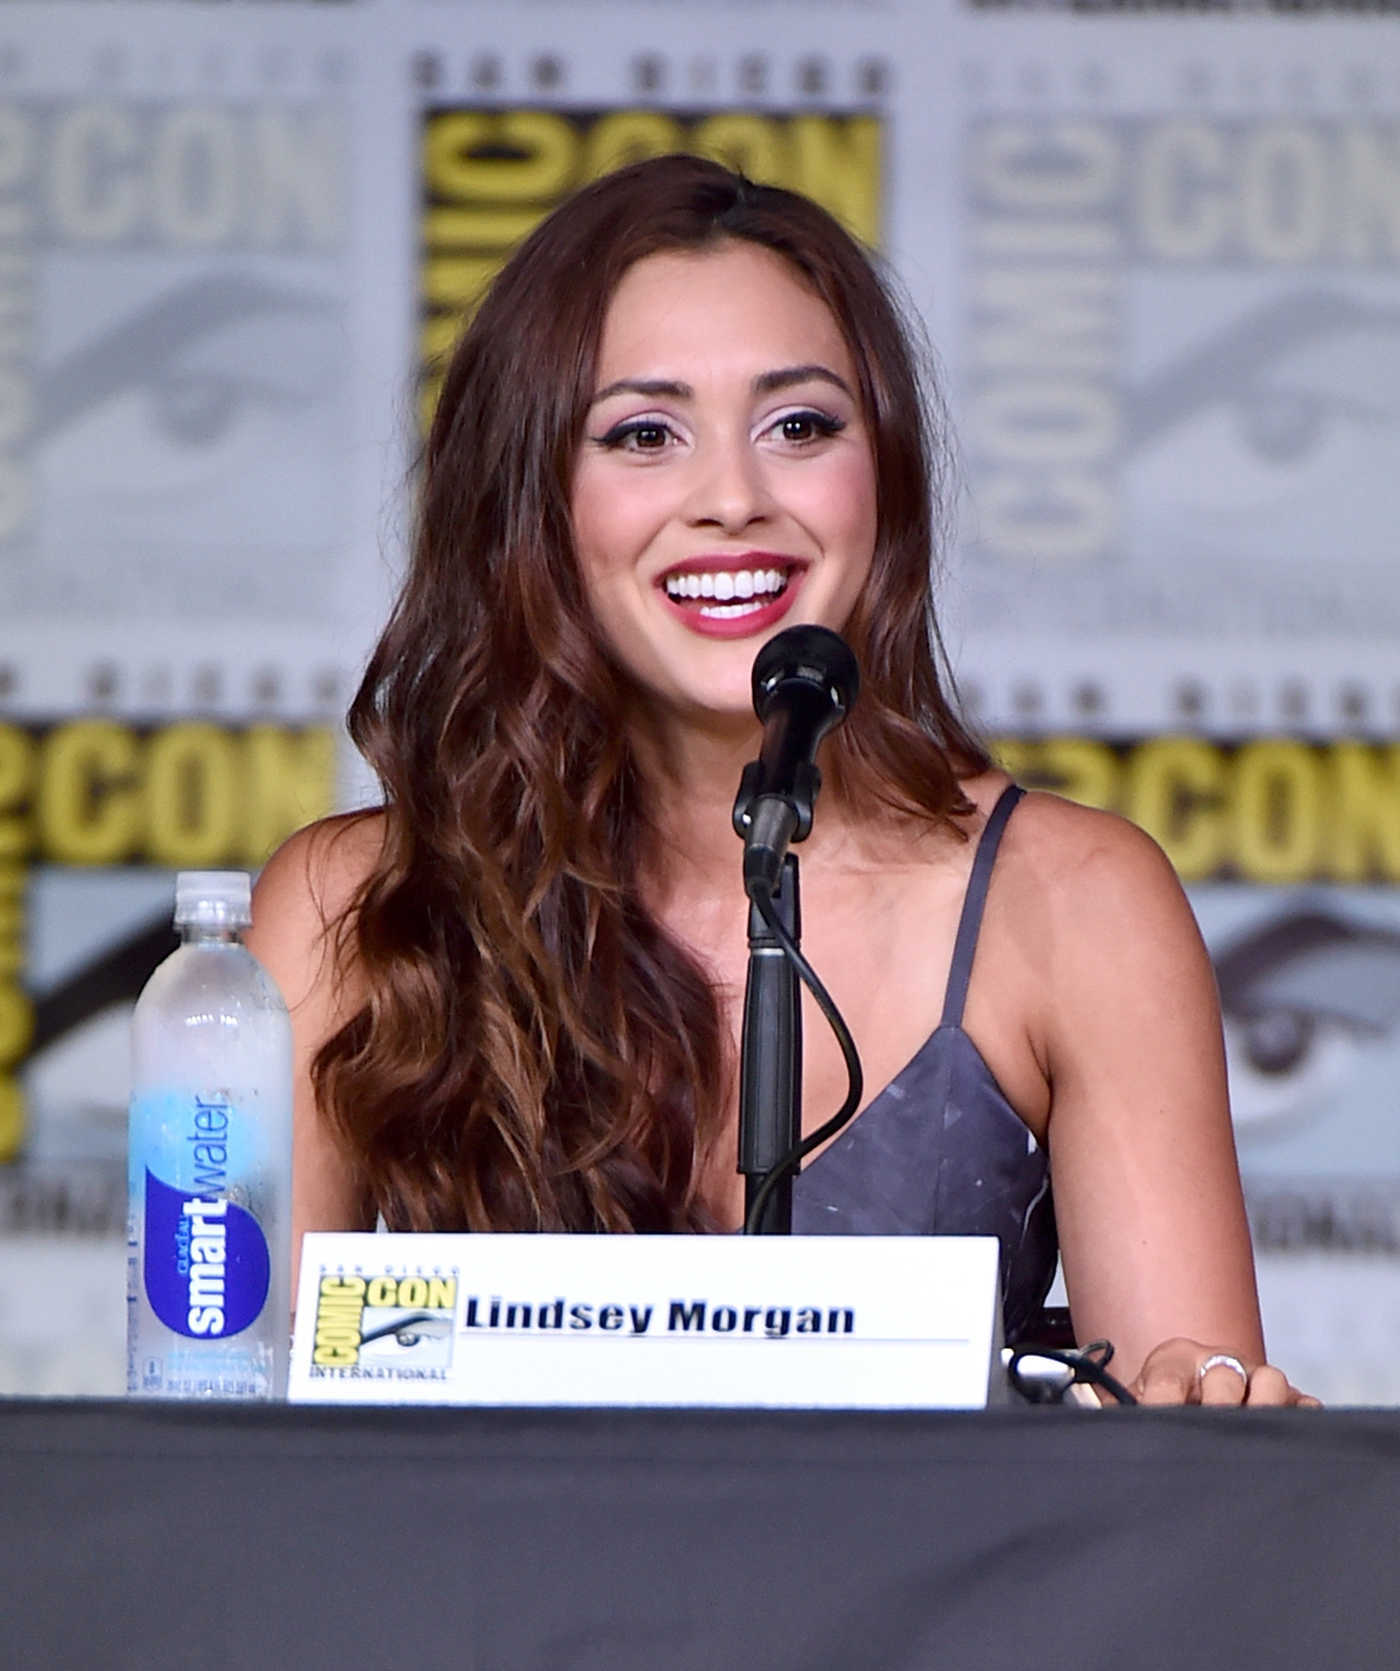 Lindsey Morgan at The 100 Panel at Comic-Con International in San Diego 07/22/2016